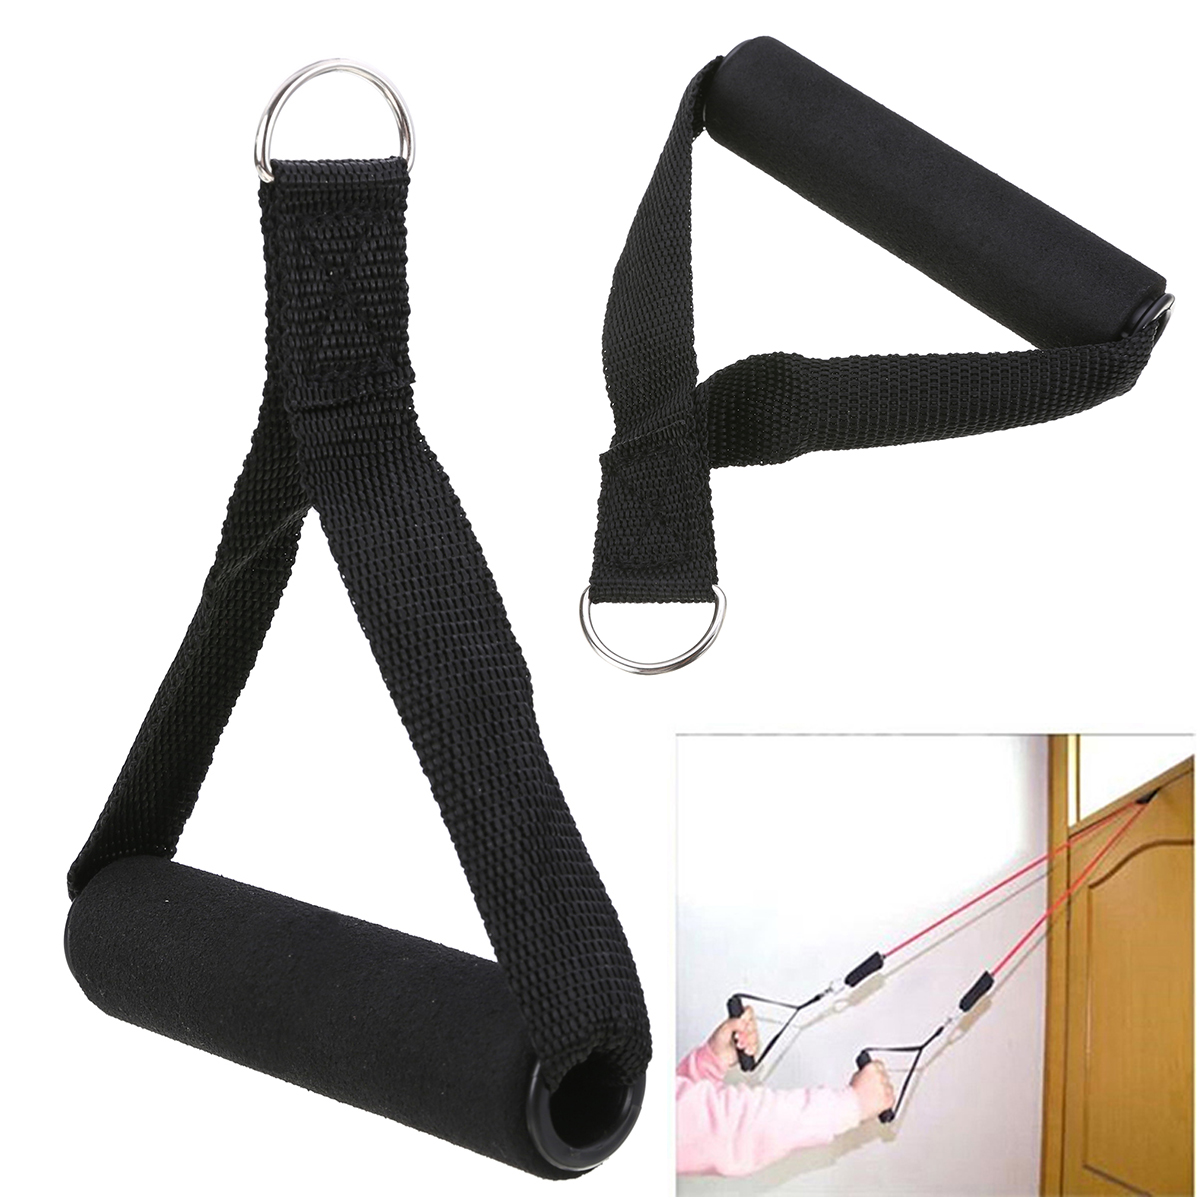 1Pcs Nylon Tricep Rope Cable Attachment Handle V Bar Fitness Sports Yoga Exercises Gym Attachment Resistance For Body Building